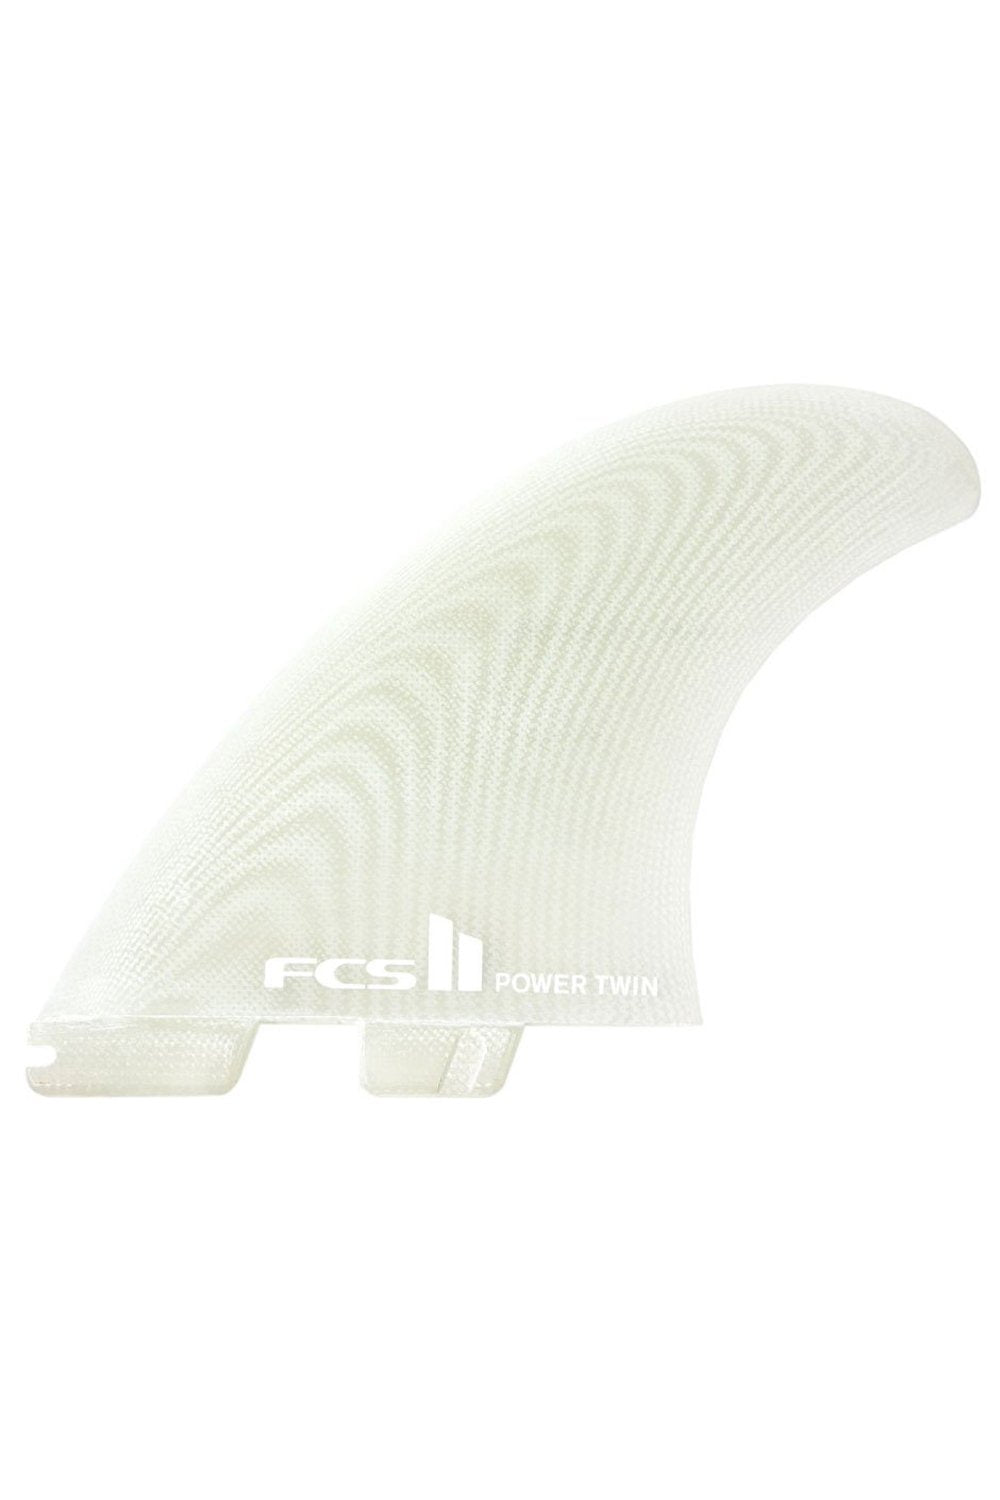 FCS2 Power Twin +1 PG Surfboard Fin Set